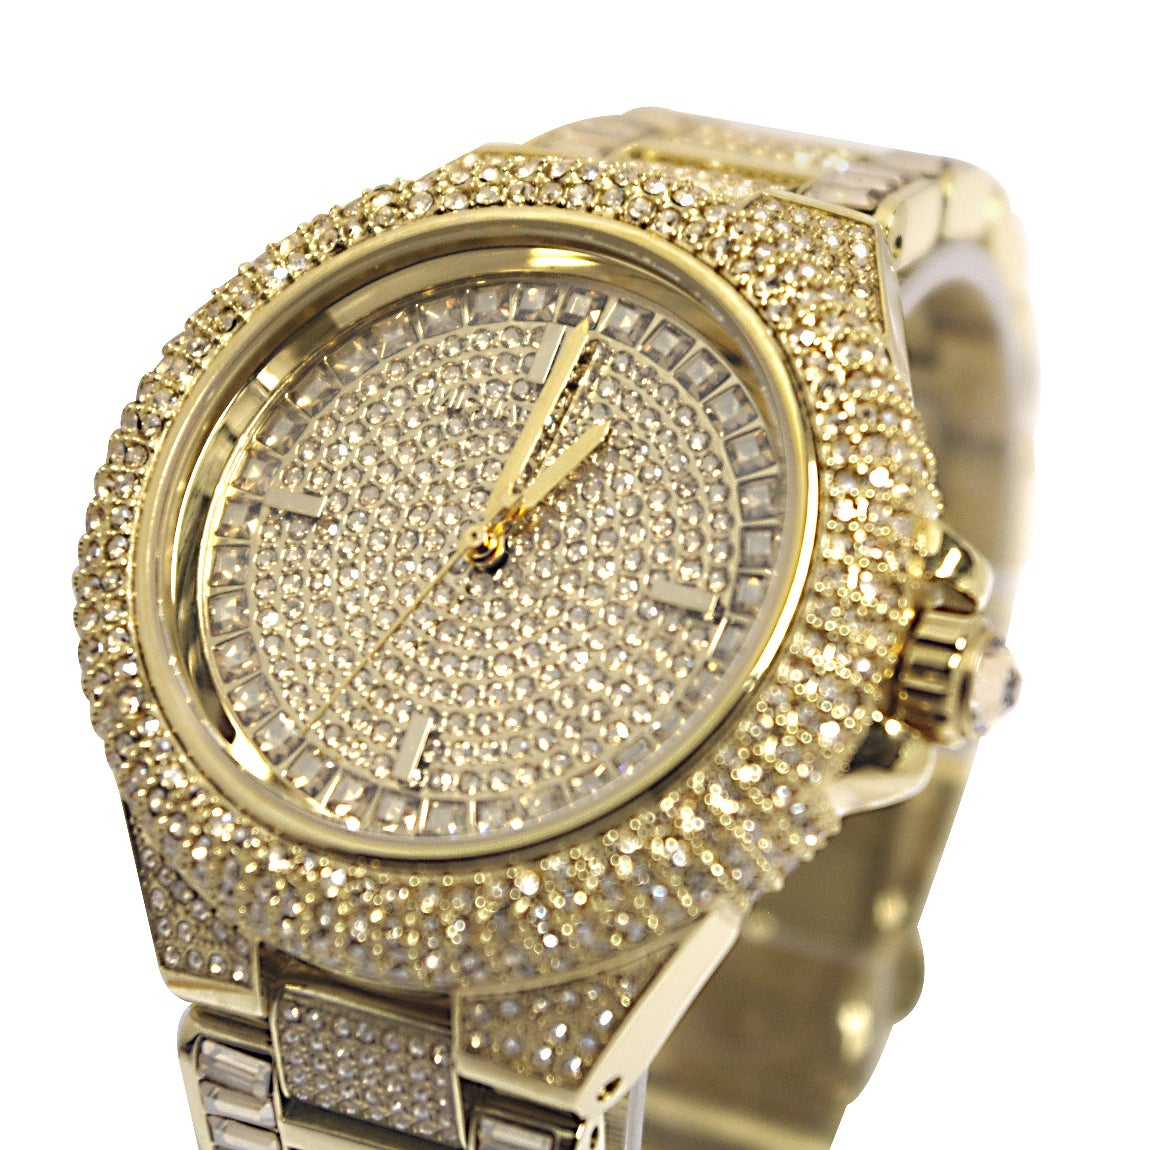 88b6707de277 Shop Michael Kors Women s MK5720  Camille  Crystal Glam Goldtone Style  Watch - Free Shipping Today - Overstock - 9358308